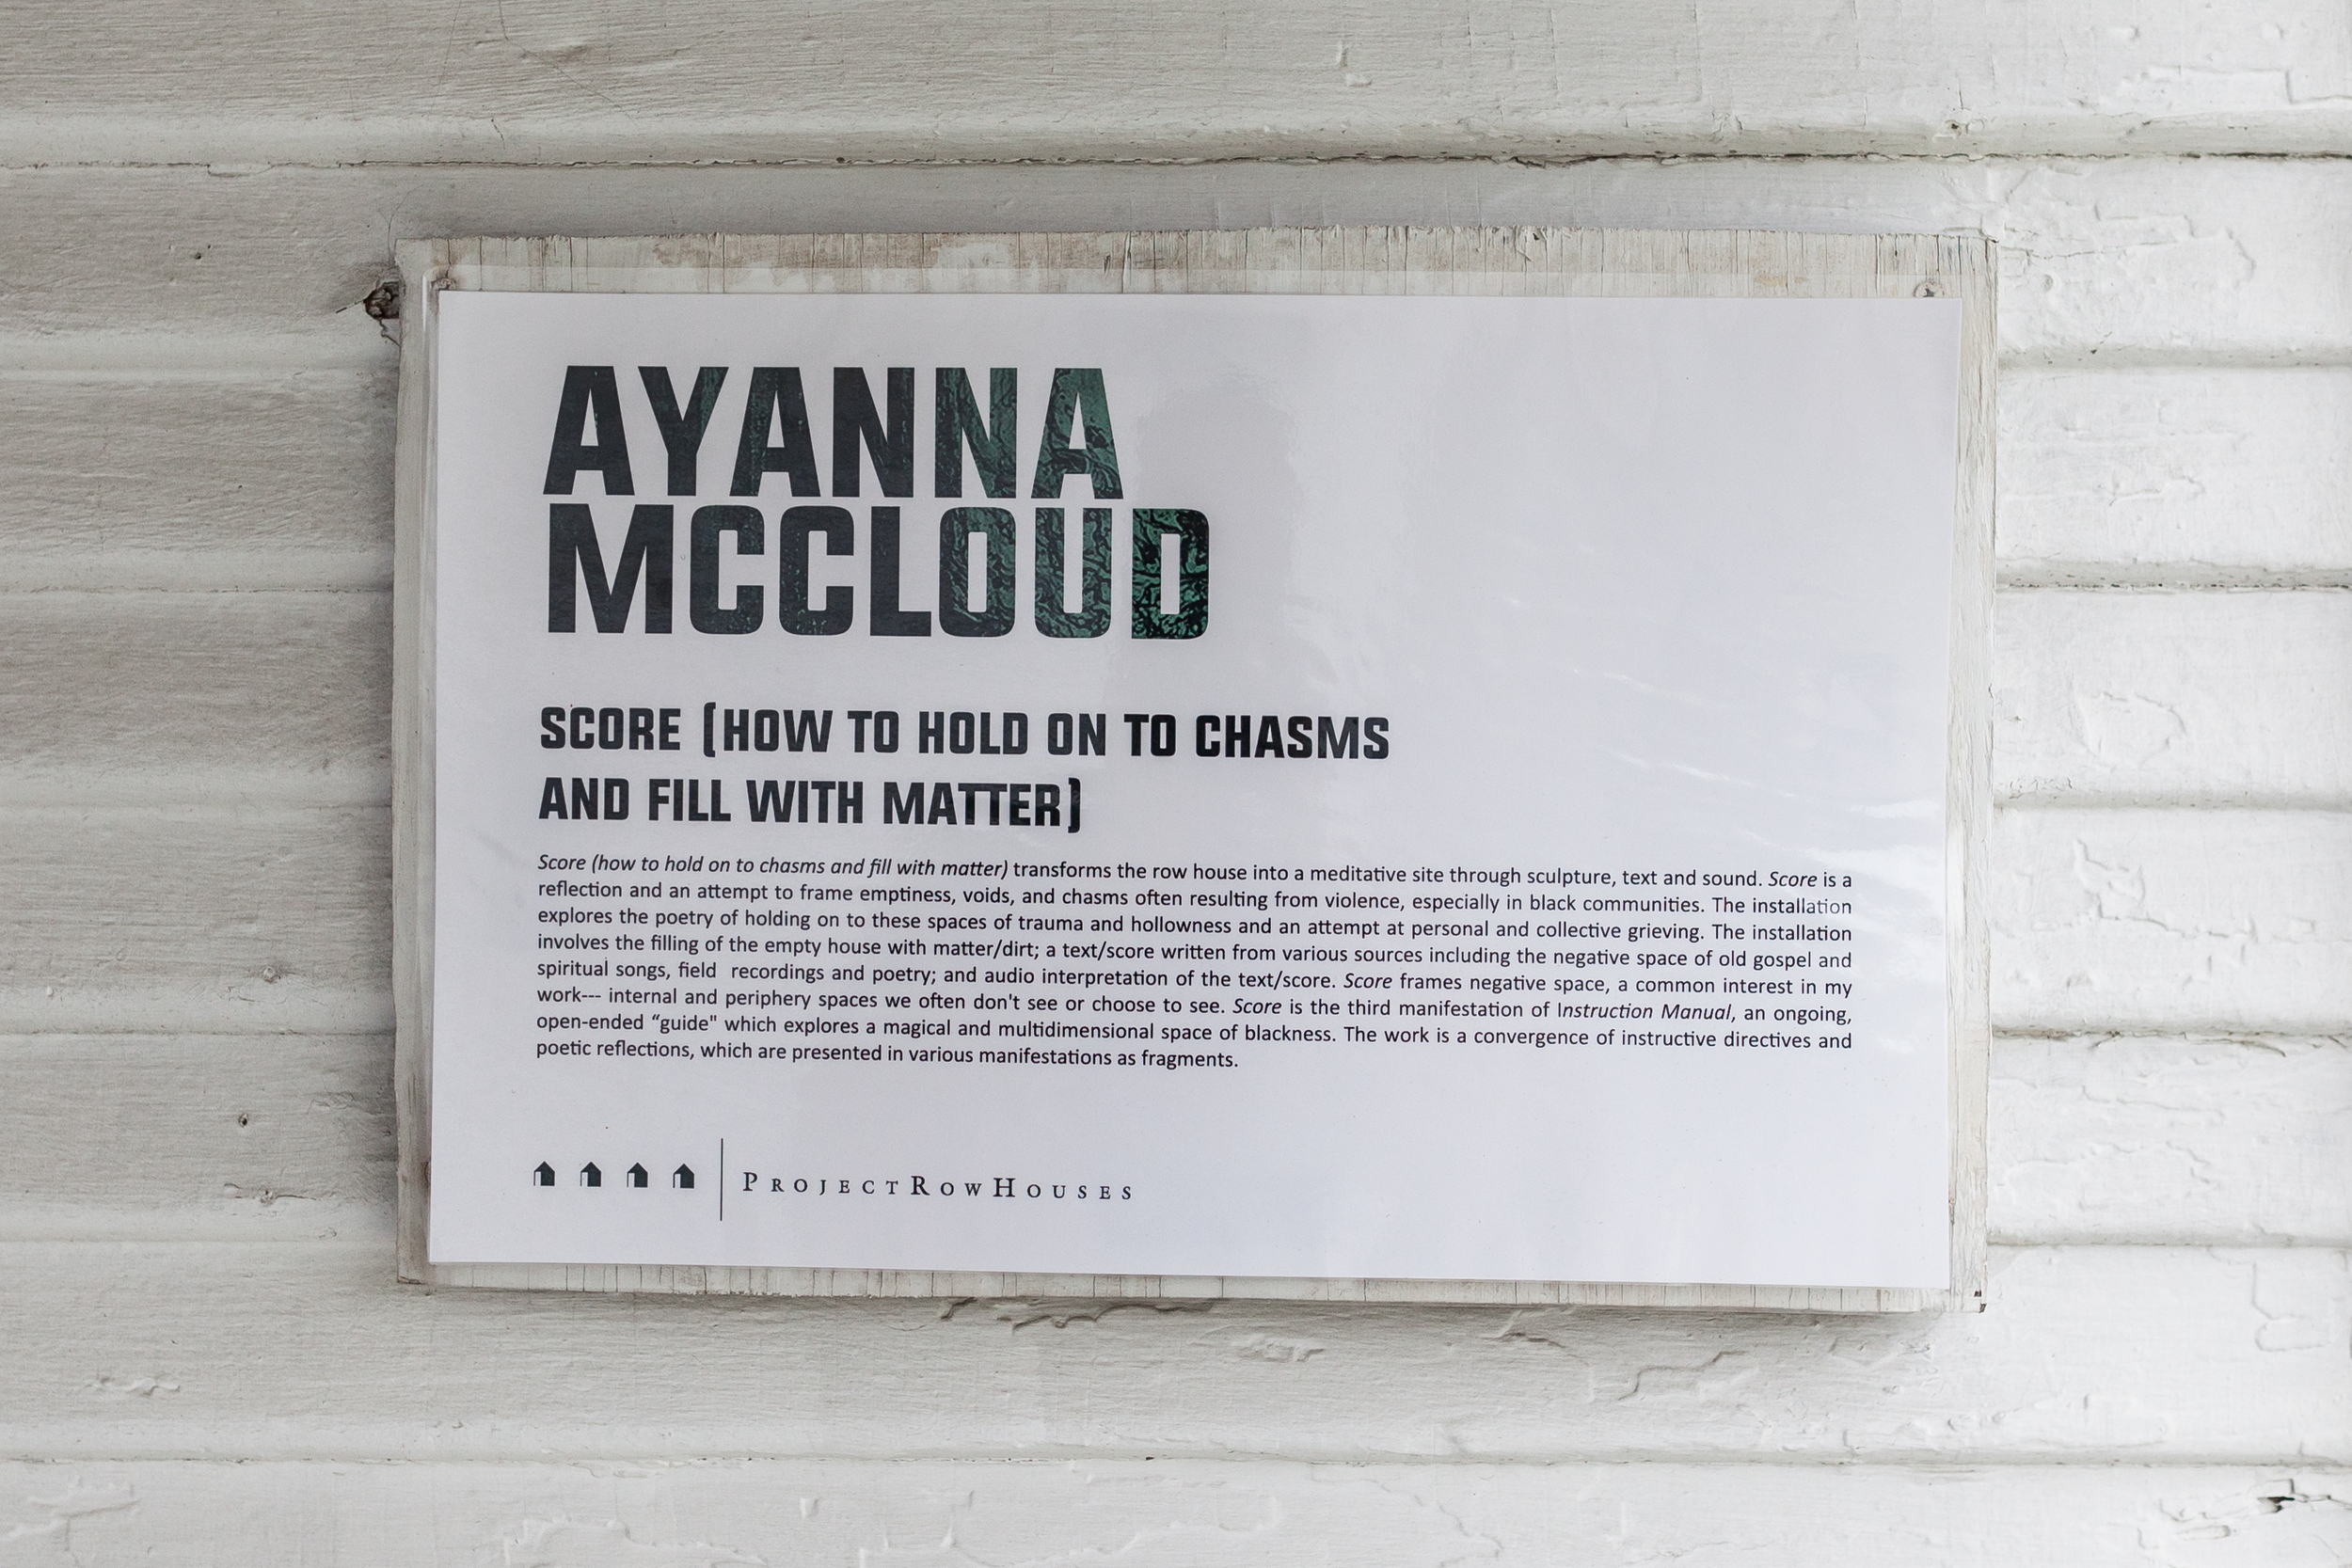 Ayanna Jolivet Mccloud, Score (how to hold on to chasms and fill with matter)